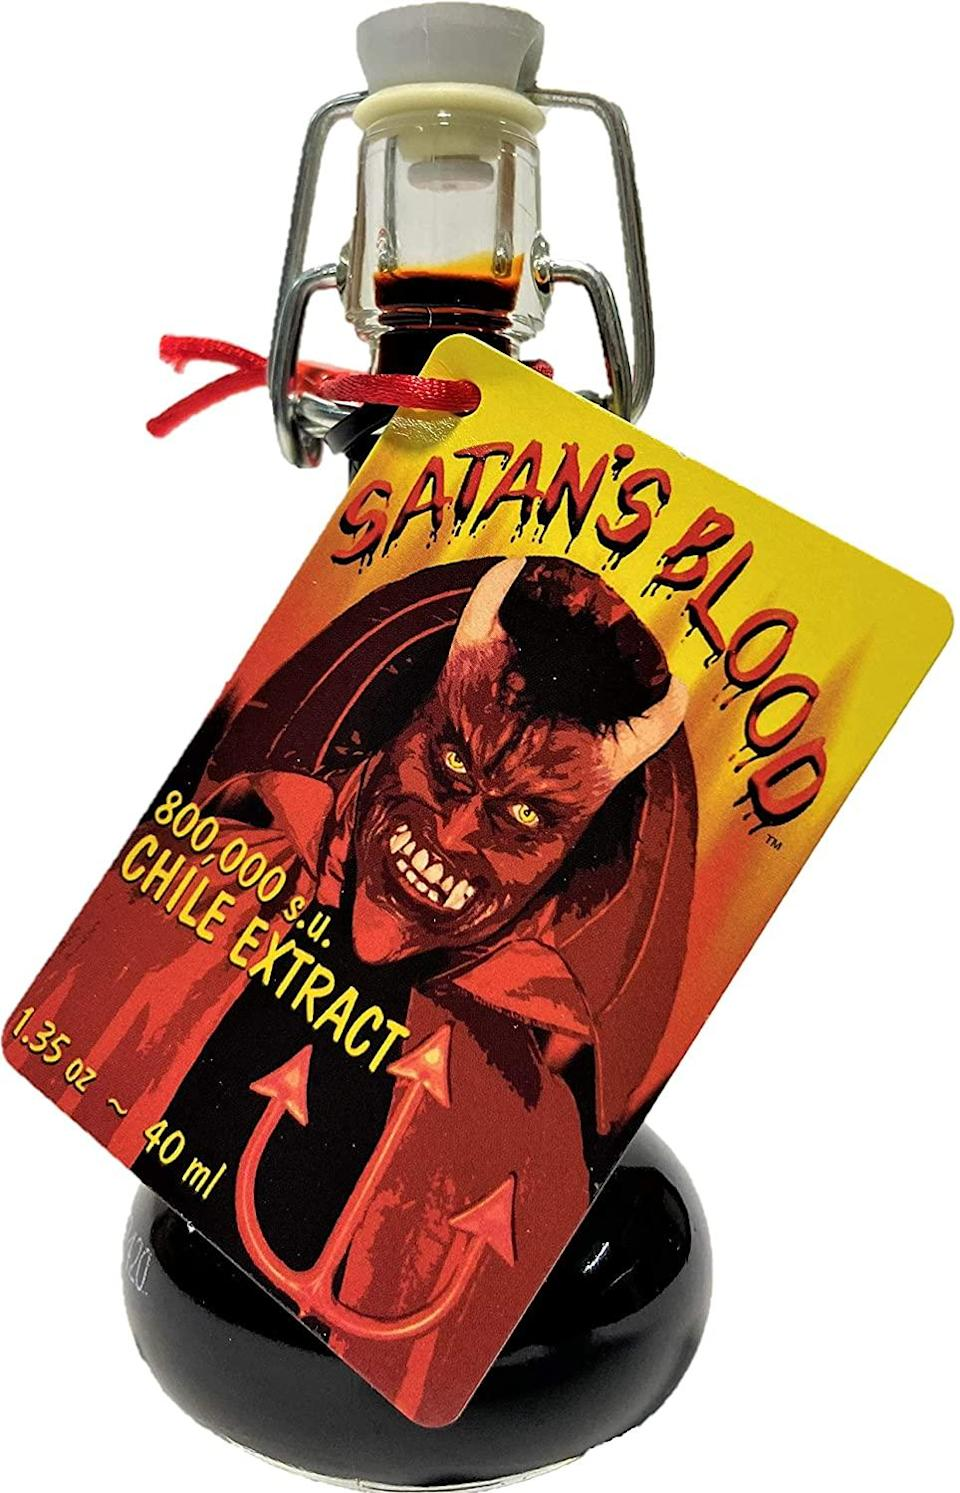 """<h2>Satan's Blood Chile Pepper Extract Hot Sauce</h2><br><strong>What is it? </strong>A 800,000 <a href=""""https://en.wikipedia.org/wiki/Scoville_scale"""" rel=""""nofollow noopener"""" target=""""_blank"""" data-ylk=""""slk:Scoville unit"""" class=""""link rapid-noclick-resp"""">Scoville unit</a>-chile extract <br><br><strong>What's the hottest take?</strong> Reviewer Gordon Grove called this fiery elixir """"a must-have supernatural sauce. Was able to raise the Antichrist and summon demons with ease. Also great with chili,"""" he added.<br><br><br><strong>Sauce Crafter's Direct</strong> Satan's Blood Chile Pepper Extract Hot Sauce, $, available at <a href=""""https://amzn.to/3q1T4mt"""" rel=""""nofollow noopener"""" target=""""_blank"""" data-ylk=""""slk:Amazon"""" class=""""link rapid-noclick-resp"""">Amazon</a>"""